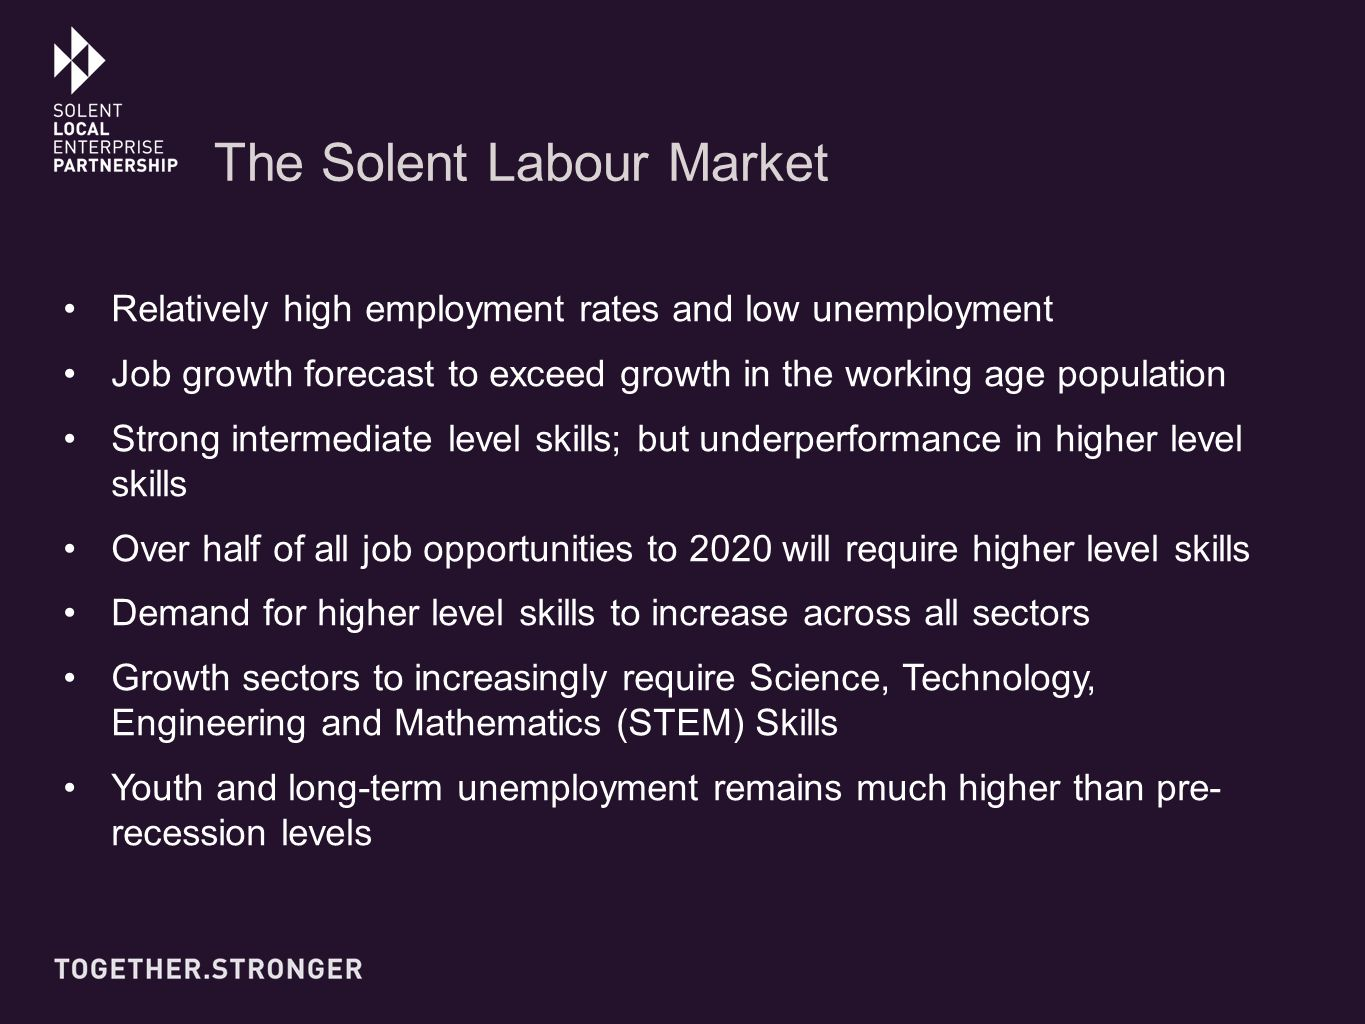 The Solent Labour Market Relatively high employment rates and low unemployment Job growth forecast to exceed growth in the working age population Strong intermediate level skills; but underperformance in higher level skills Over half of all job opportunities to 2020 will require higher level skills Demand for higher level skills to increase across all sectors Growth sectors to increasingly require Science, Technology, Engineering and Mathematics (STEM) Skills Youth and long-term unemployment remains much higher than pre- recession levels